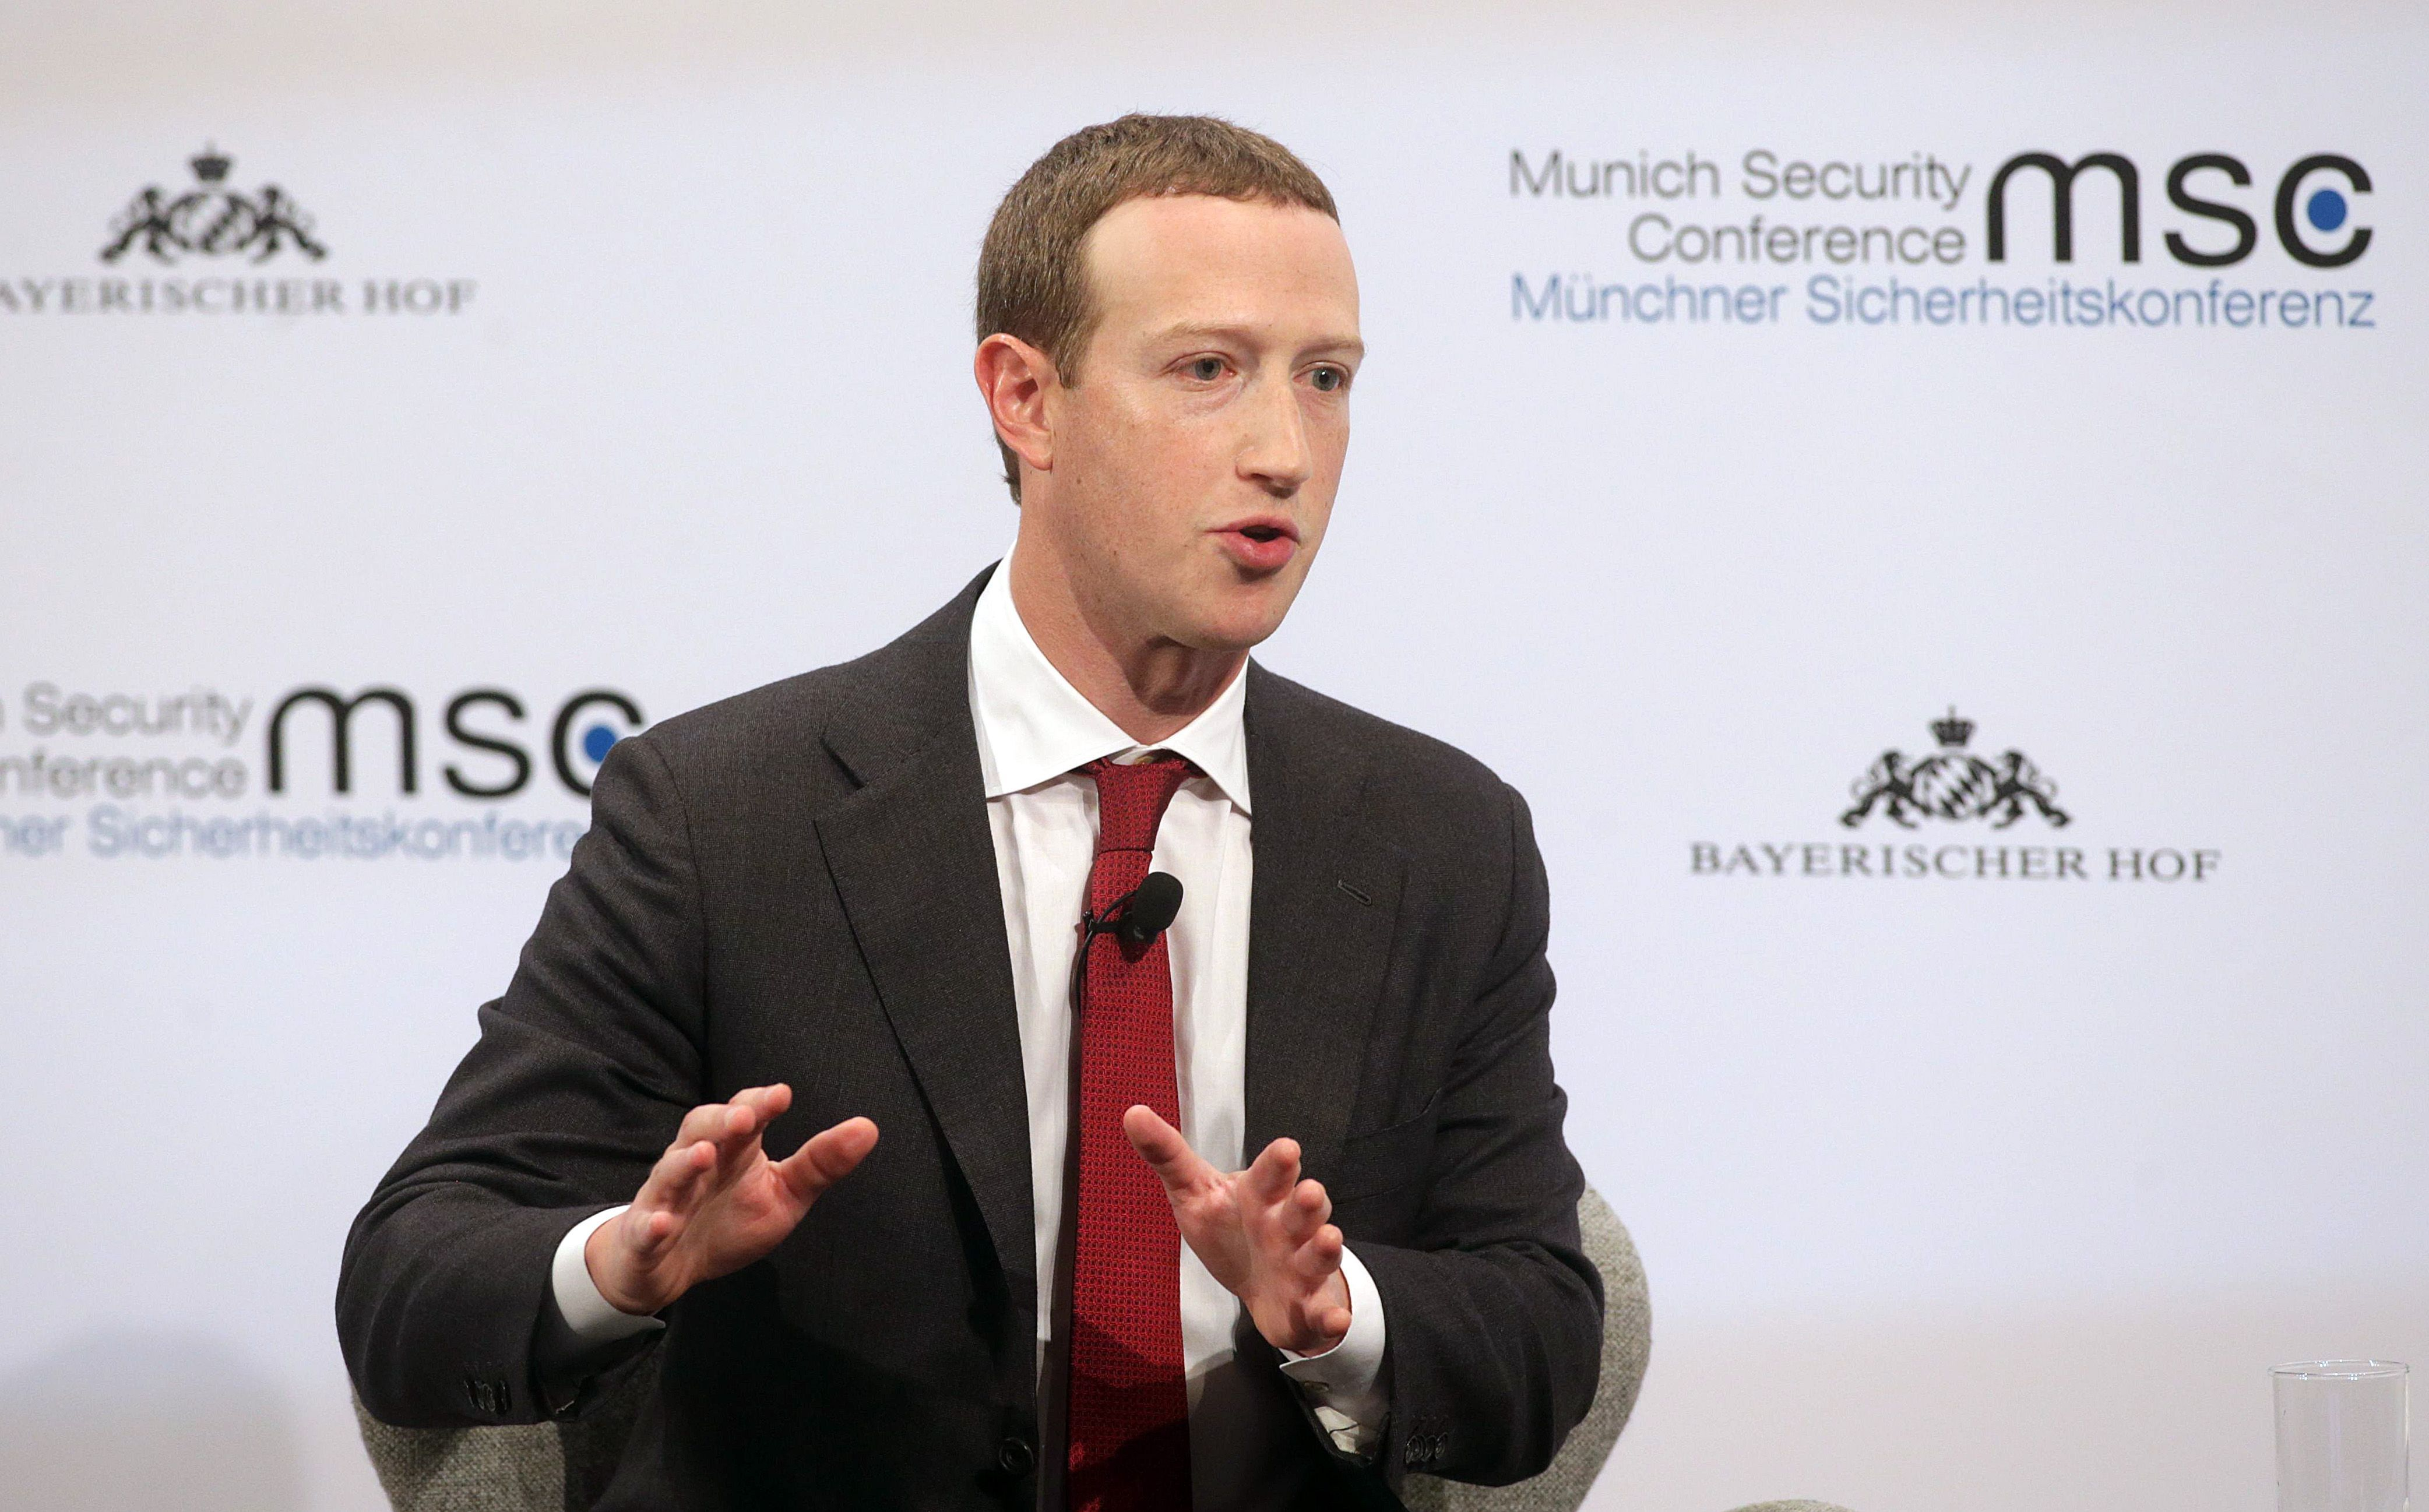 Facebook CEO Mark Zuckerberg speaking at a conference in Munich, Germany, February 2020.